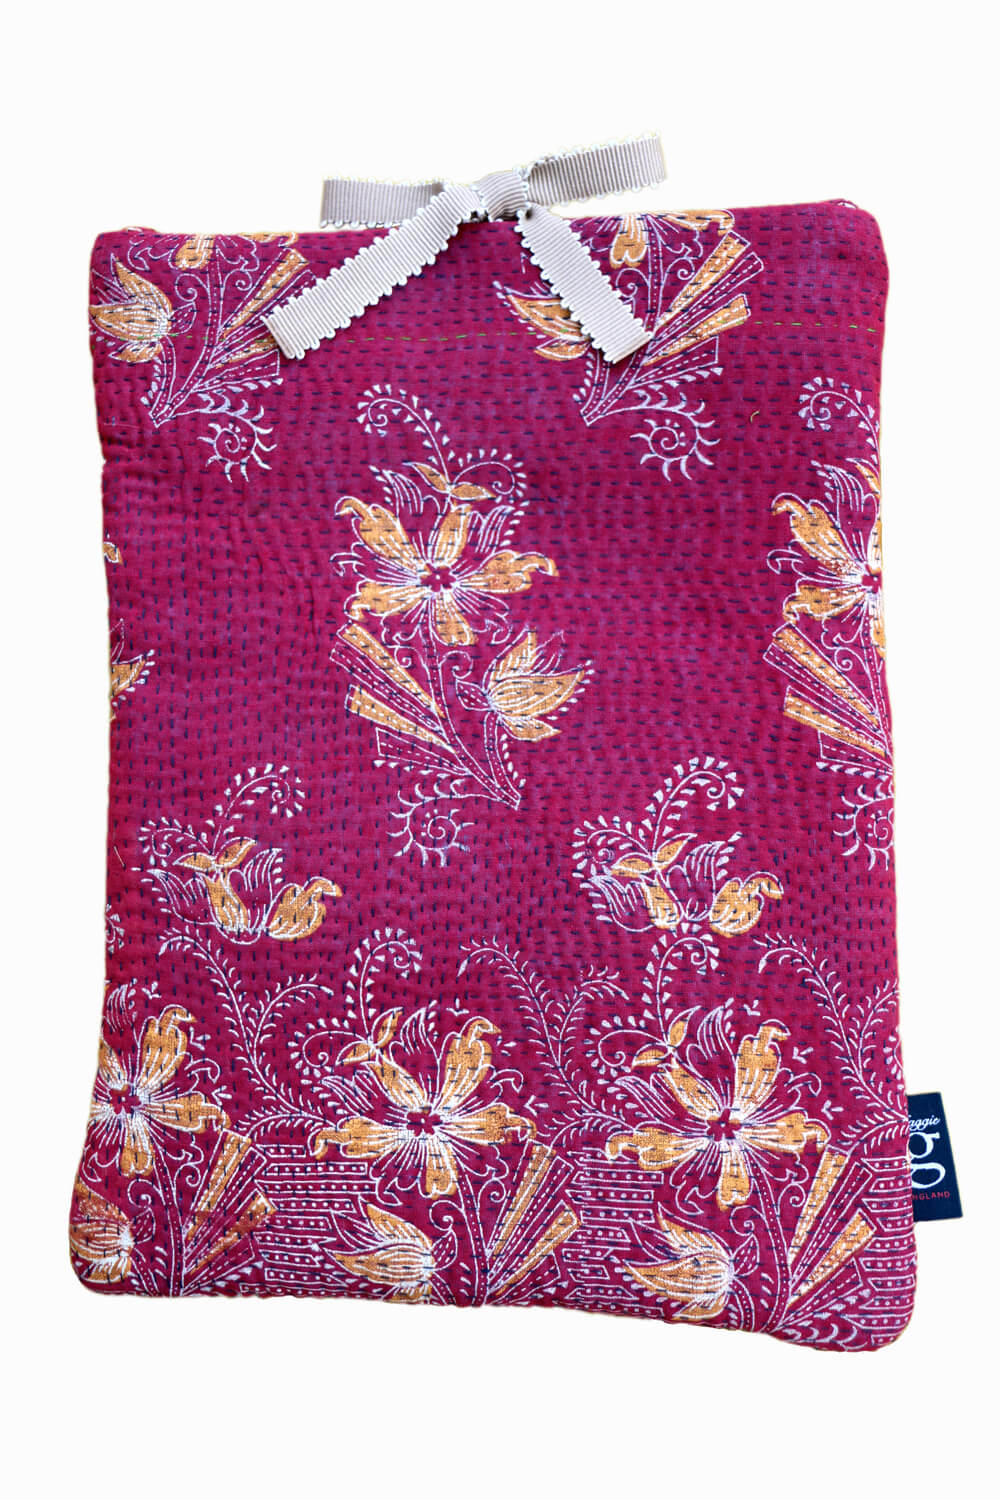 Designer quilted kantha iPad cover - Holly